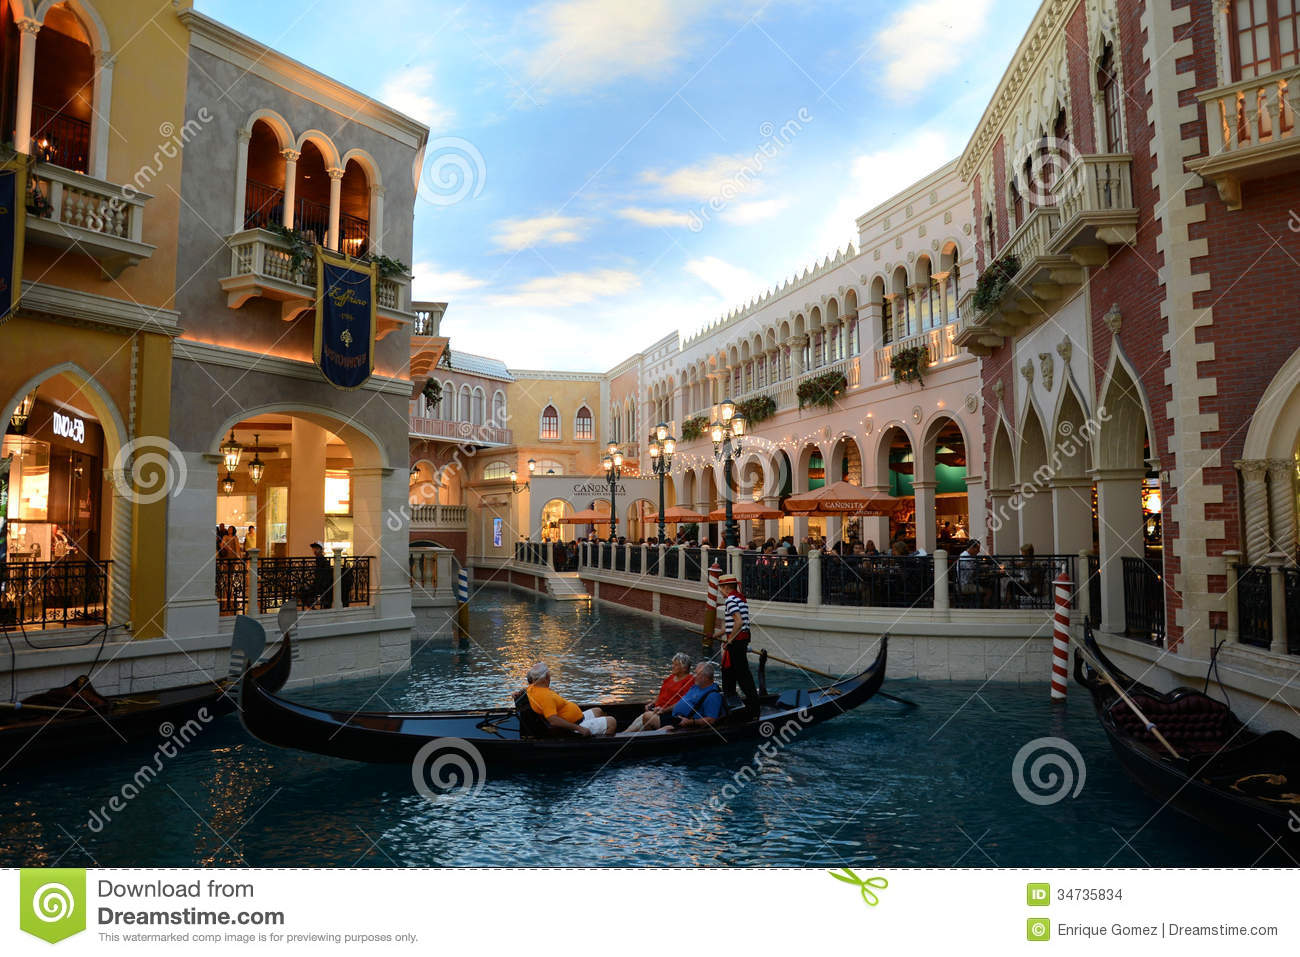 Grand Canal Shoppes At Venetian Hotel Las Vegas Editorial Stock Image - Image: 34735834